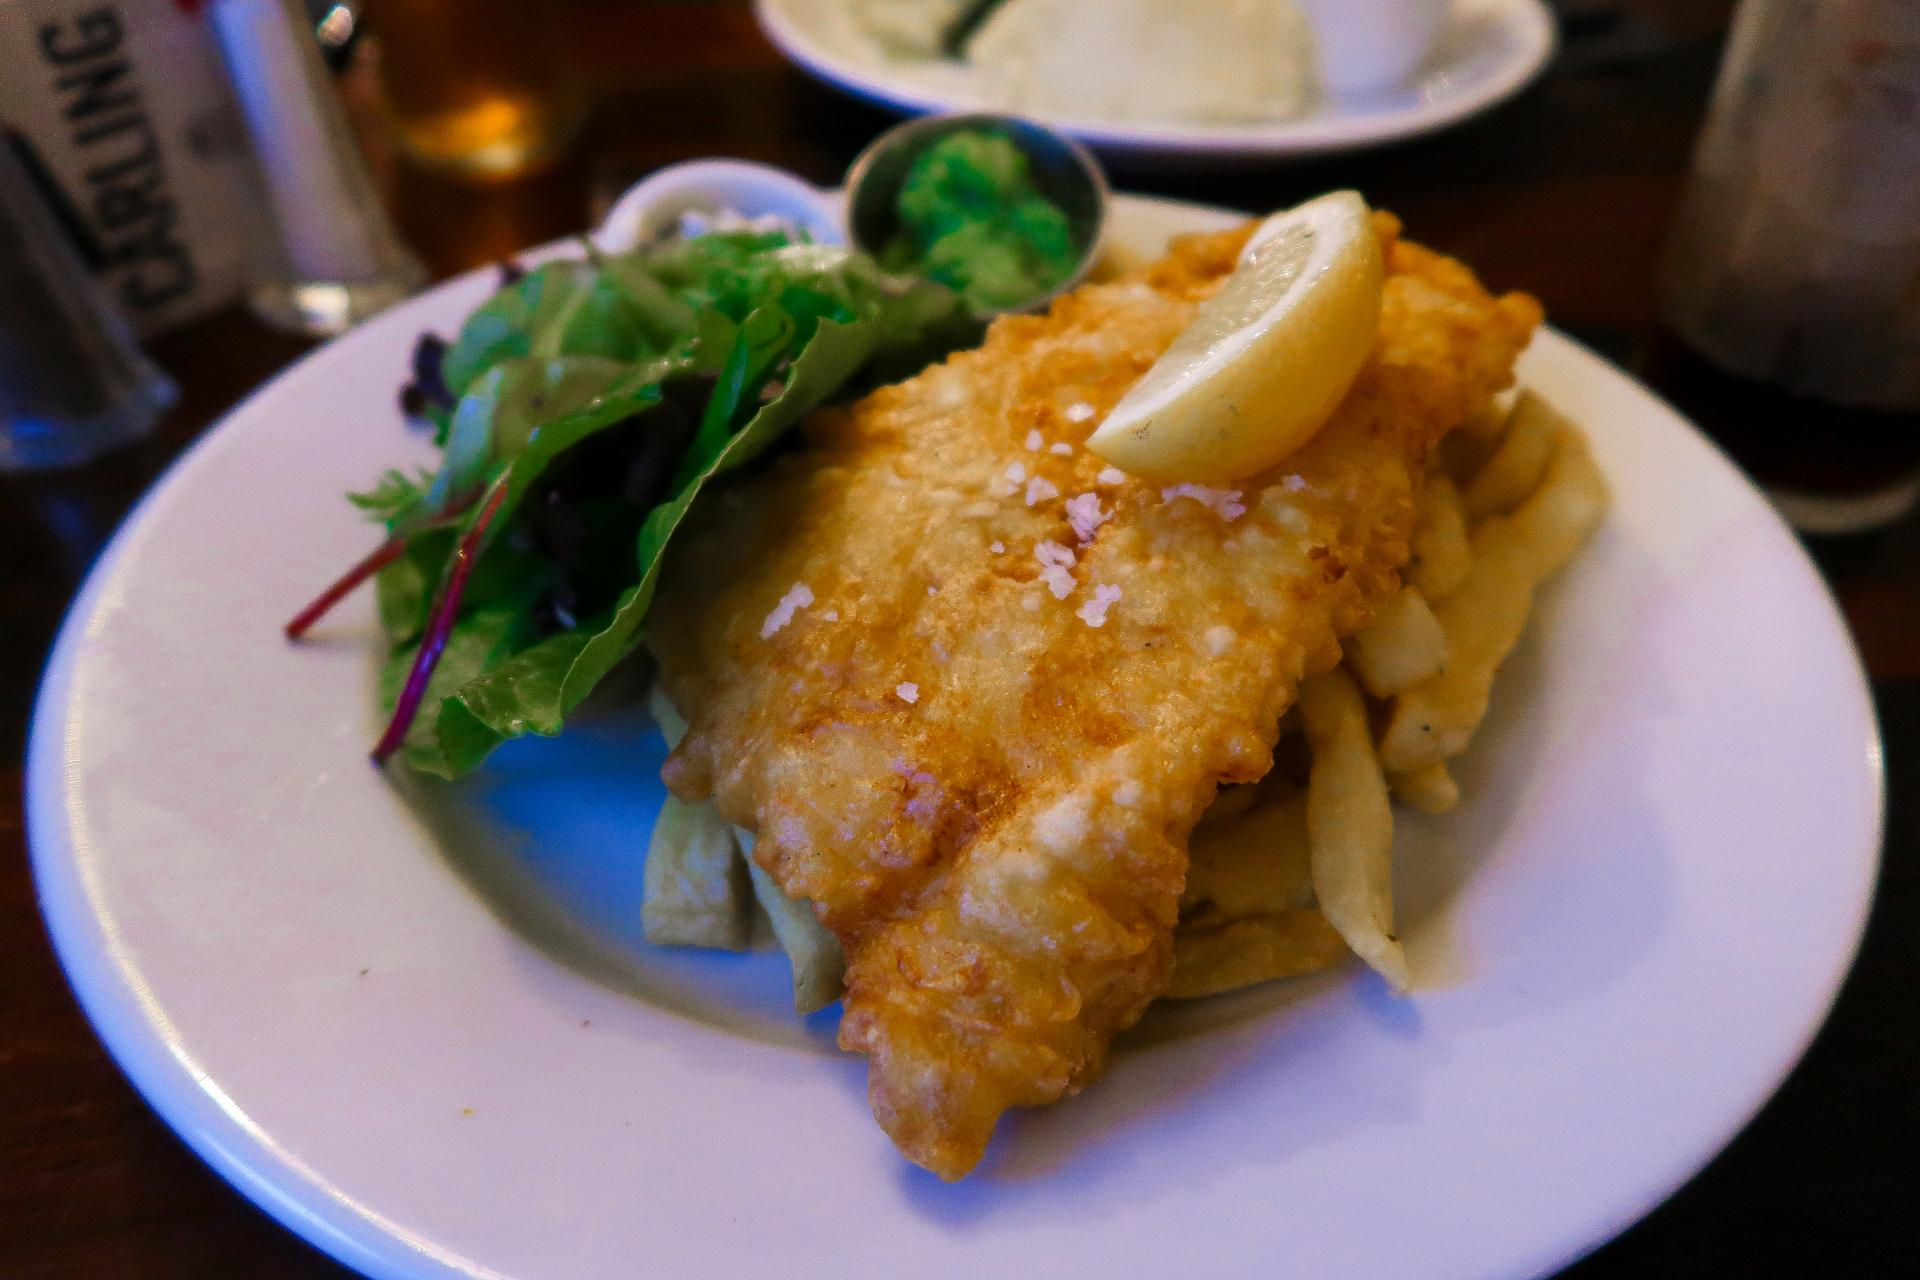 Fish and Chips at The Ship Inn, Swansea Bay